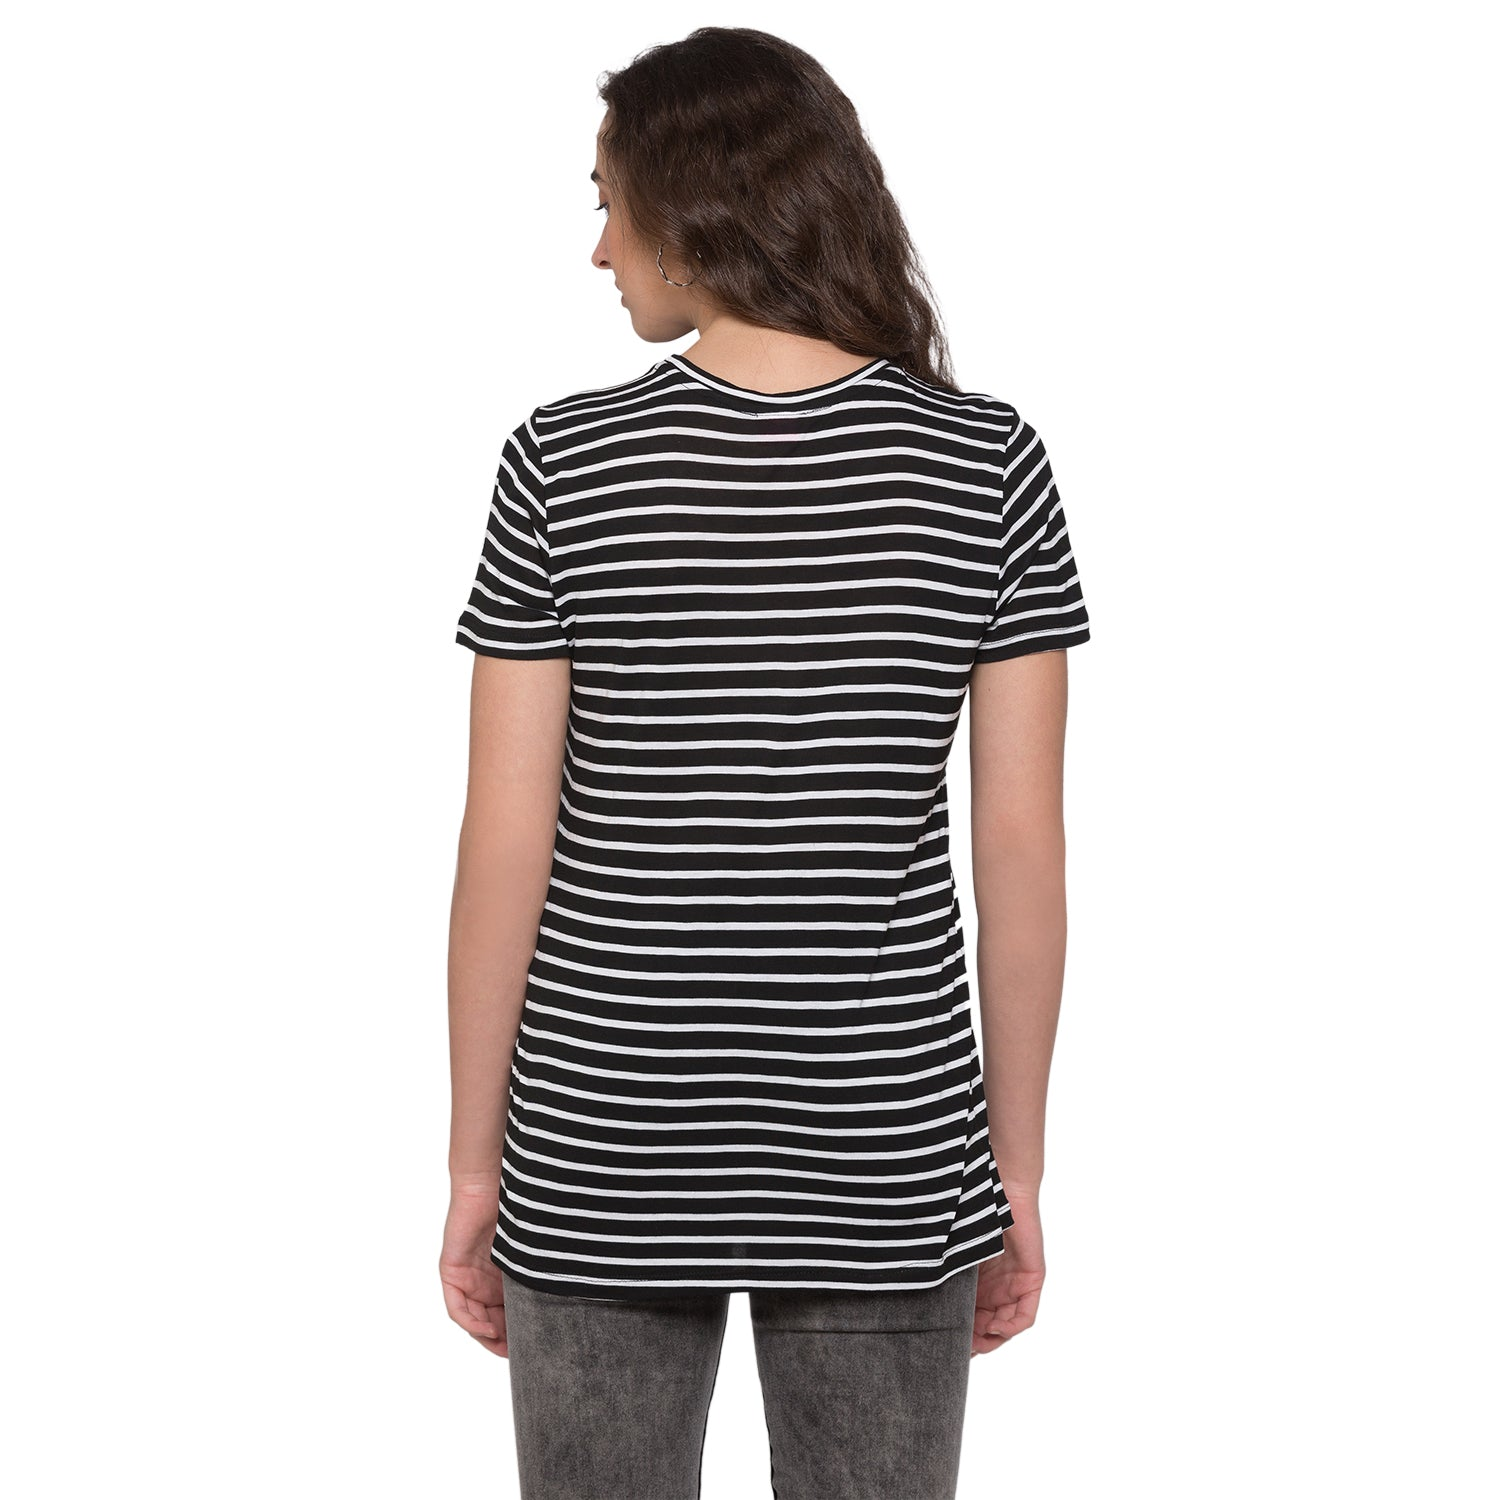 Globus Black & White Striped Top3